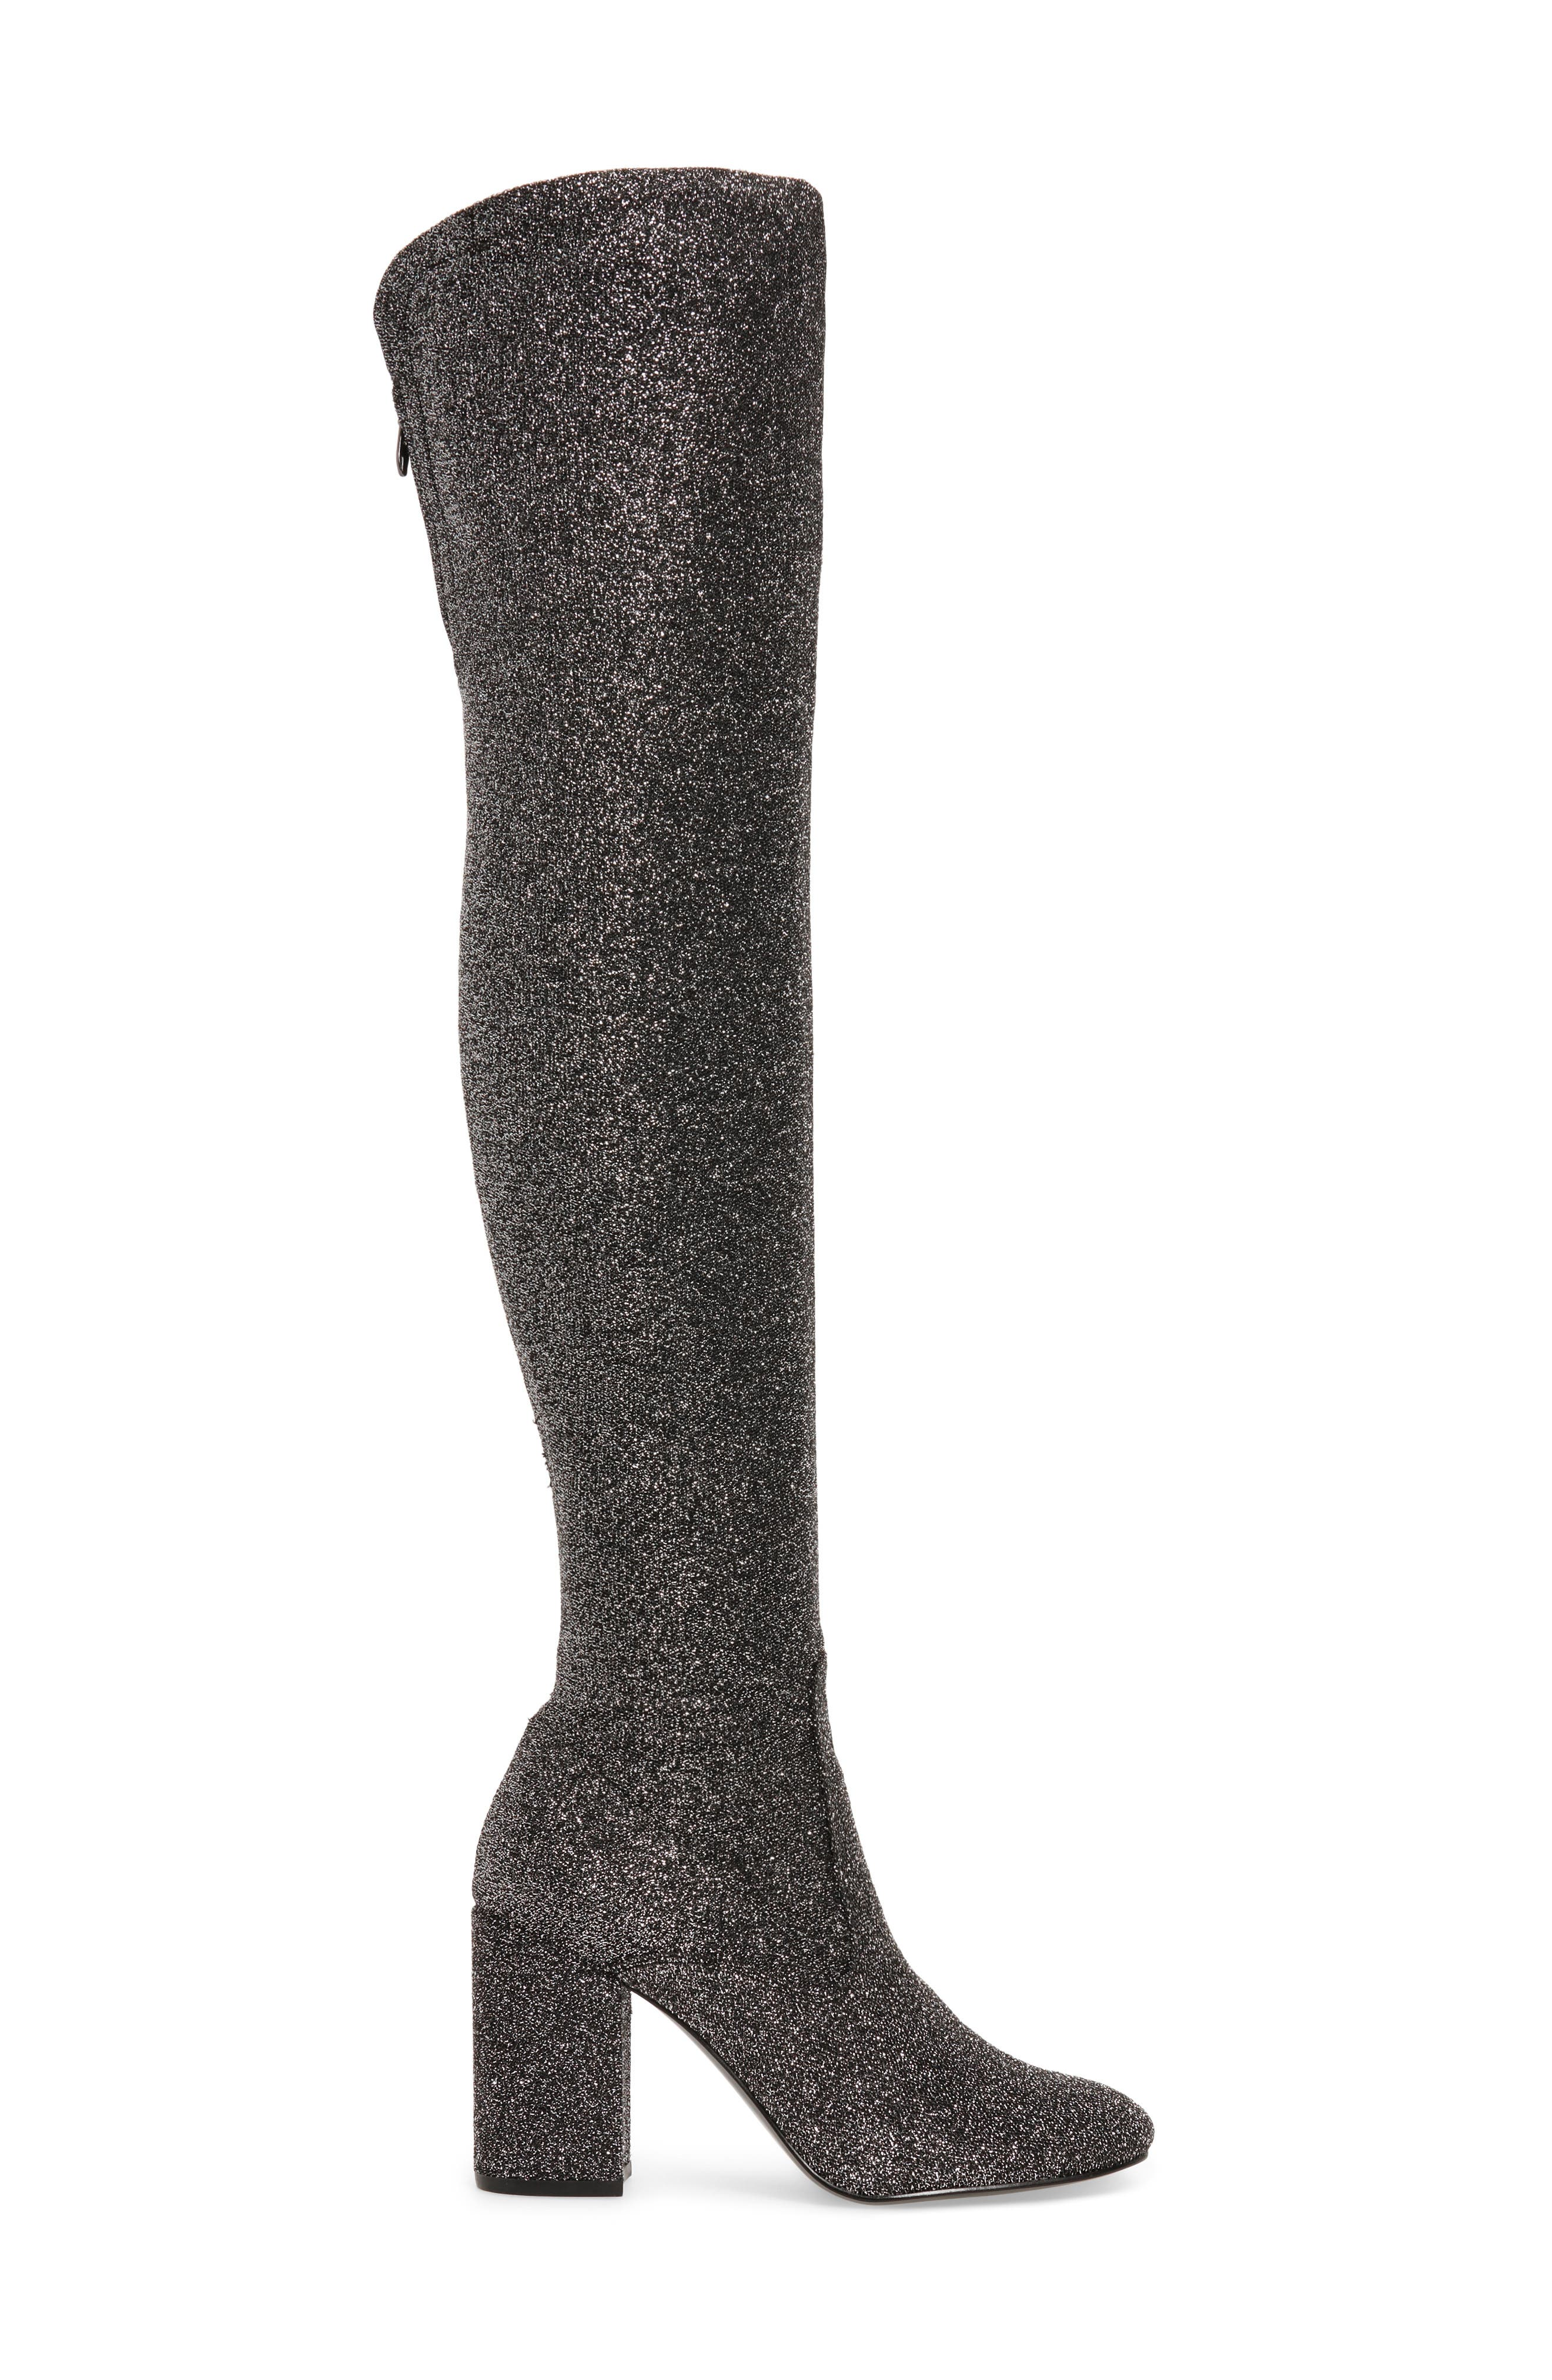 Carah Over the Knee Boot,                             Alternate thumbnail 3, color,                             024